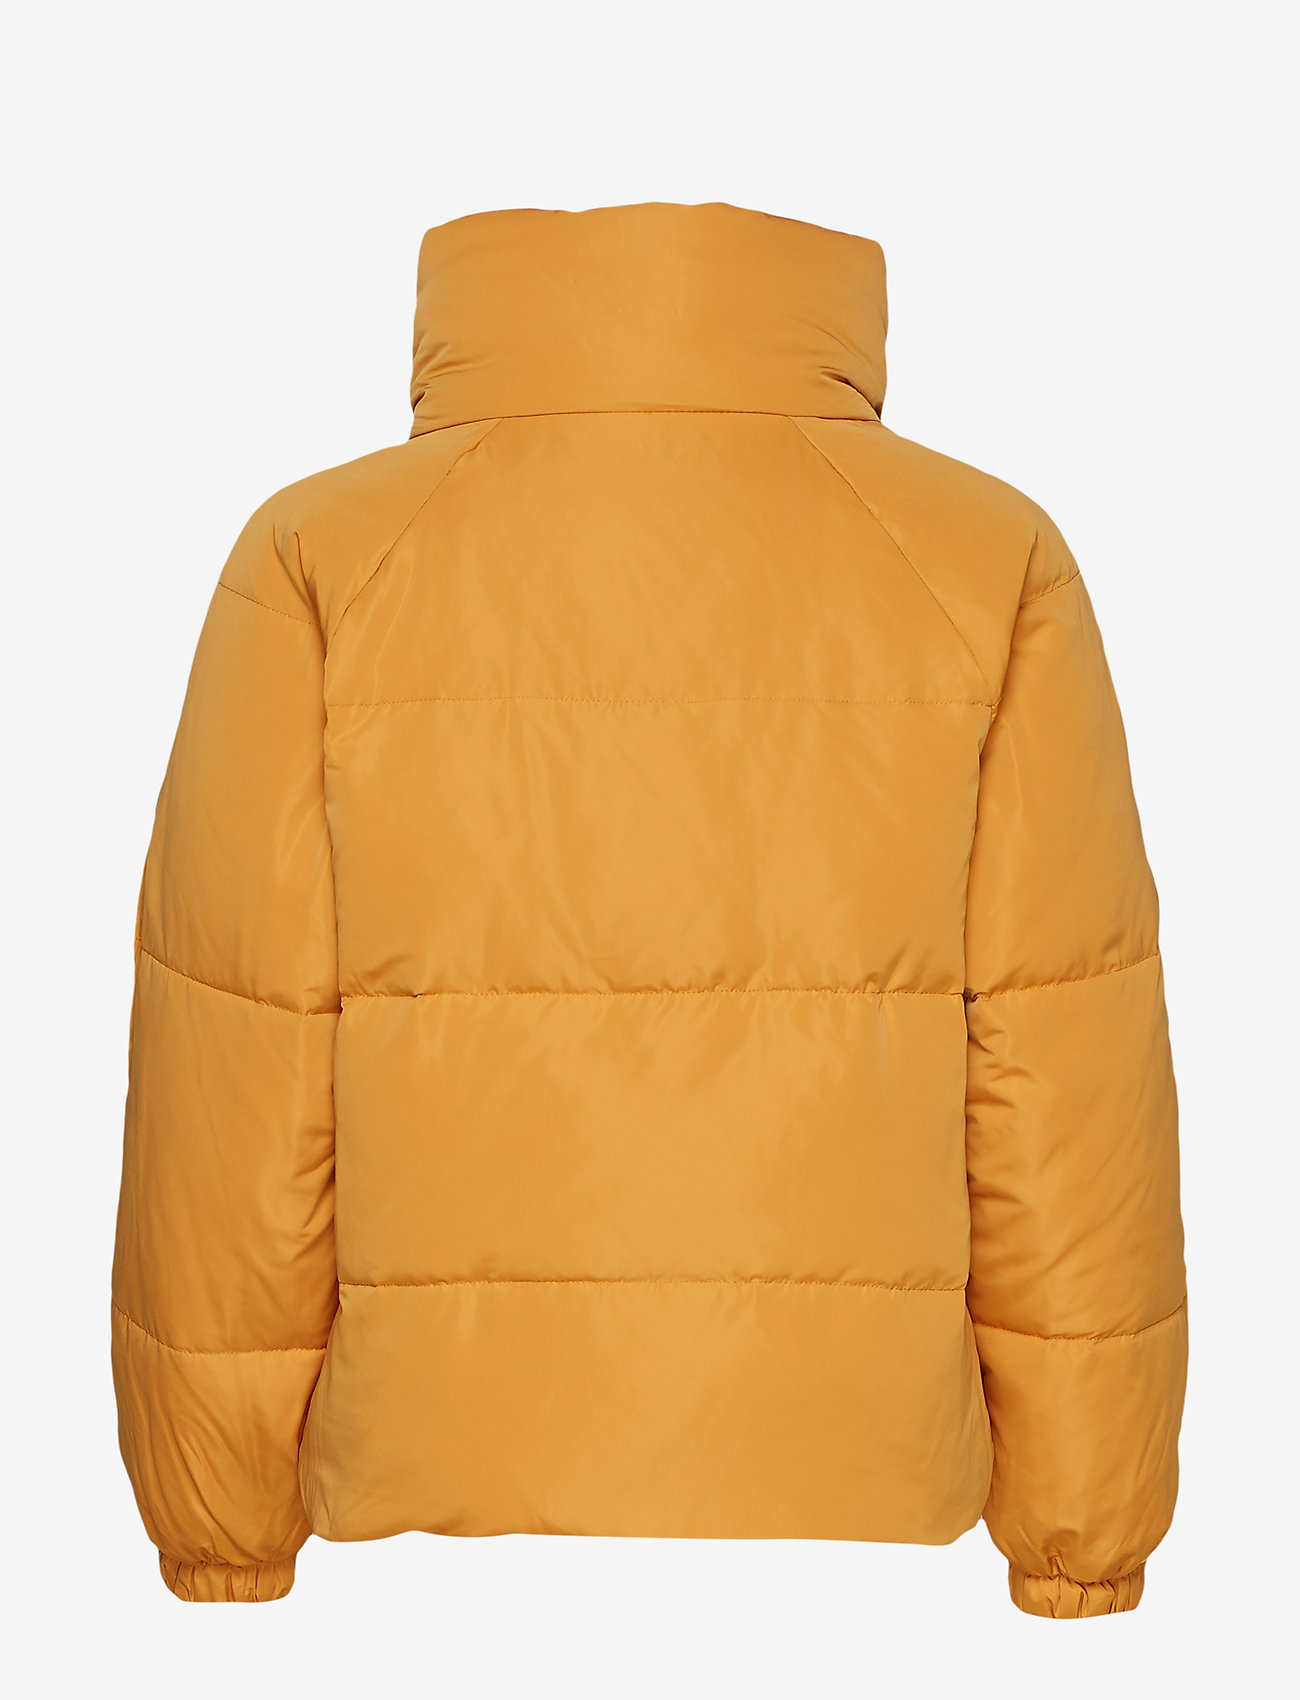 Ihhaley Ja2 (Spruce Yellow) (540 kr) - ICHI